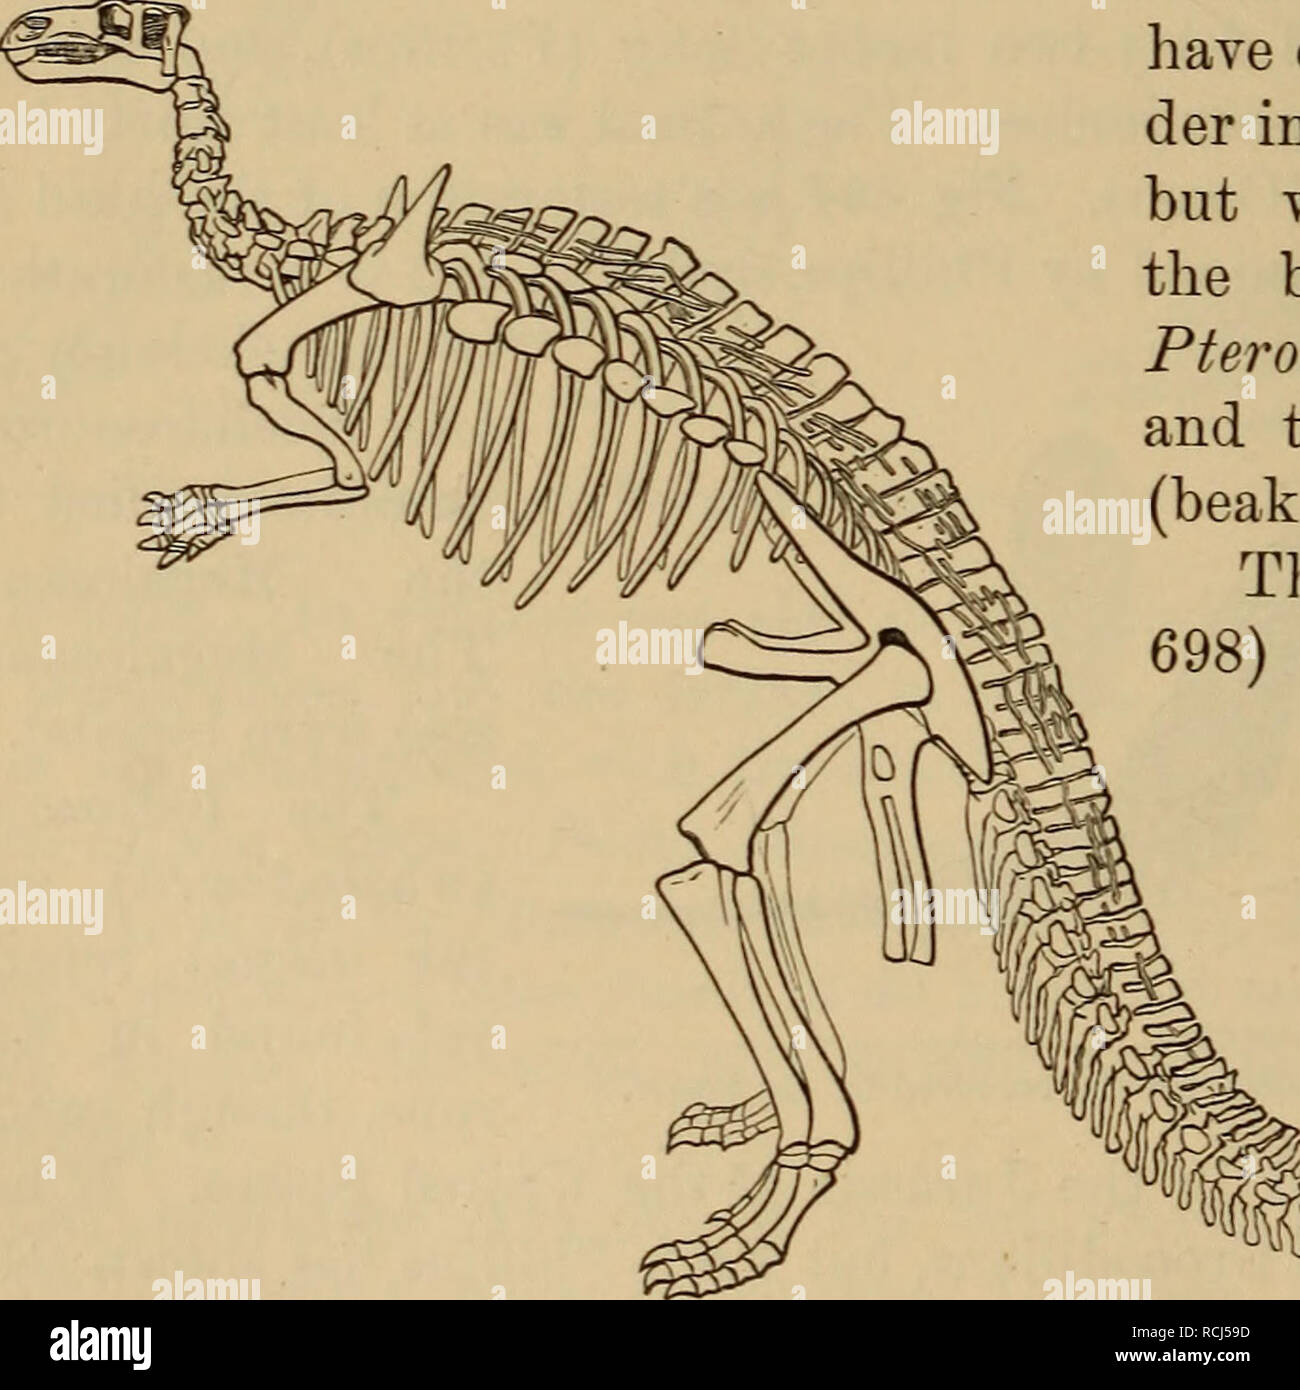 . Elements of geology : a text-book for colleges and for the general reader. Geology. Fig. 694.—Head of Megalosaurus. x ^j (restored by Phillips). hind-leg, and small and short fore-leg. From its structure, it must have walked habitually on its hind-legs alone (Fig. 697). 3. Pterosaurs.—These flying reptiles were certainly among the most extraordinary animals that have ever existed. The or- der includes several genera, but we will describe only the best known, viz., the Pterodactyl (wing-finger), and the Khamphorhynchus (beak-snout). The Pterodactyl (Fig. 698) combined the short, compact body; Stock Photo